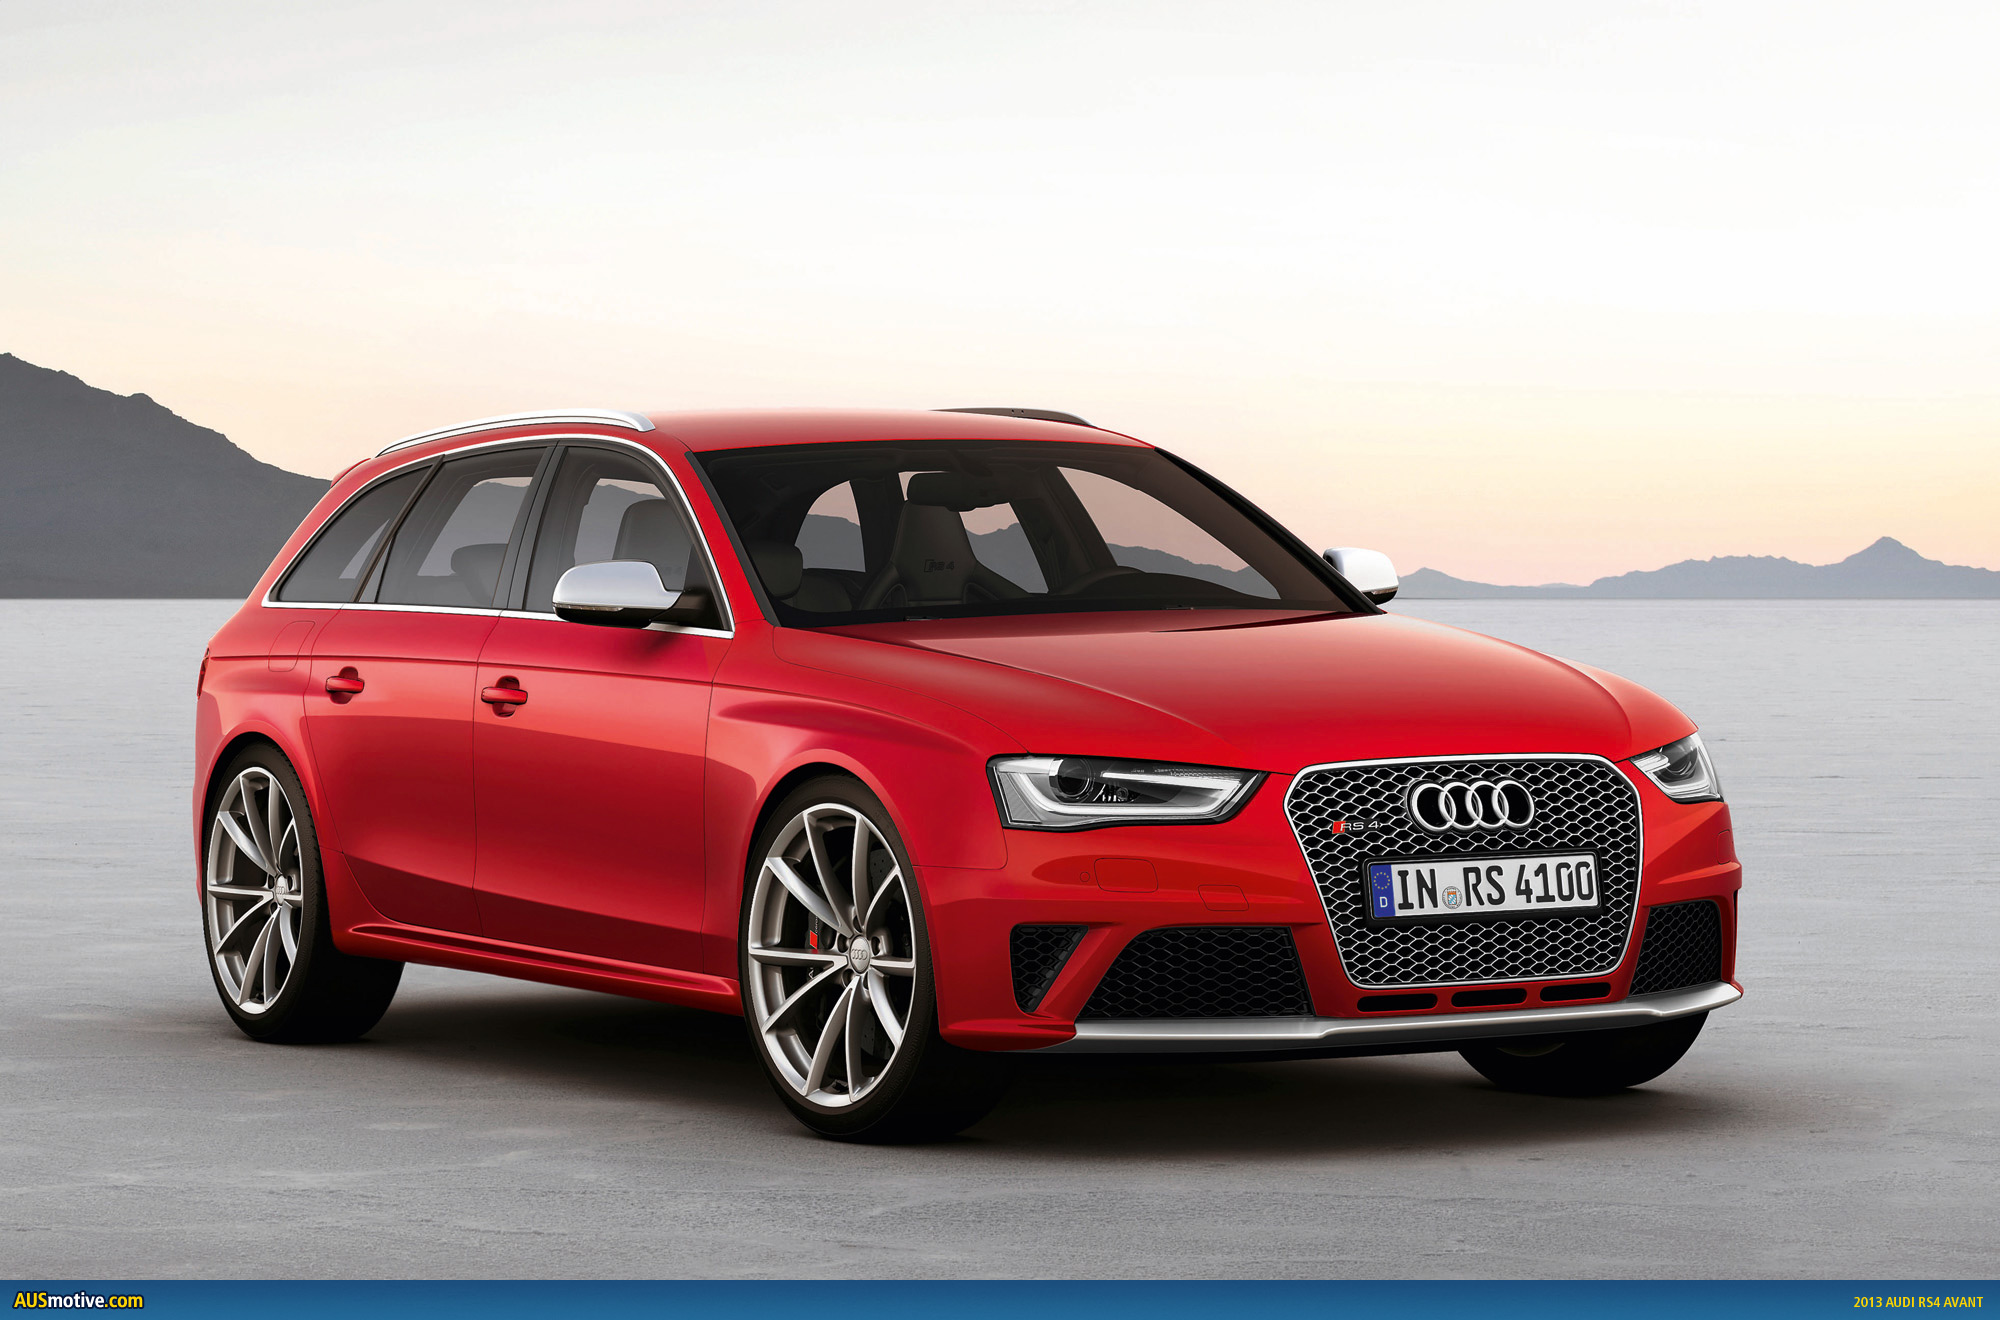 Audi RS4 HD Car and Auto Wallpaper for Samsung S5, Iphone I6, Android & Computer 6 Wallpaper